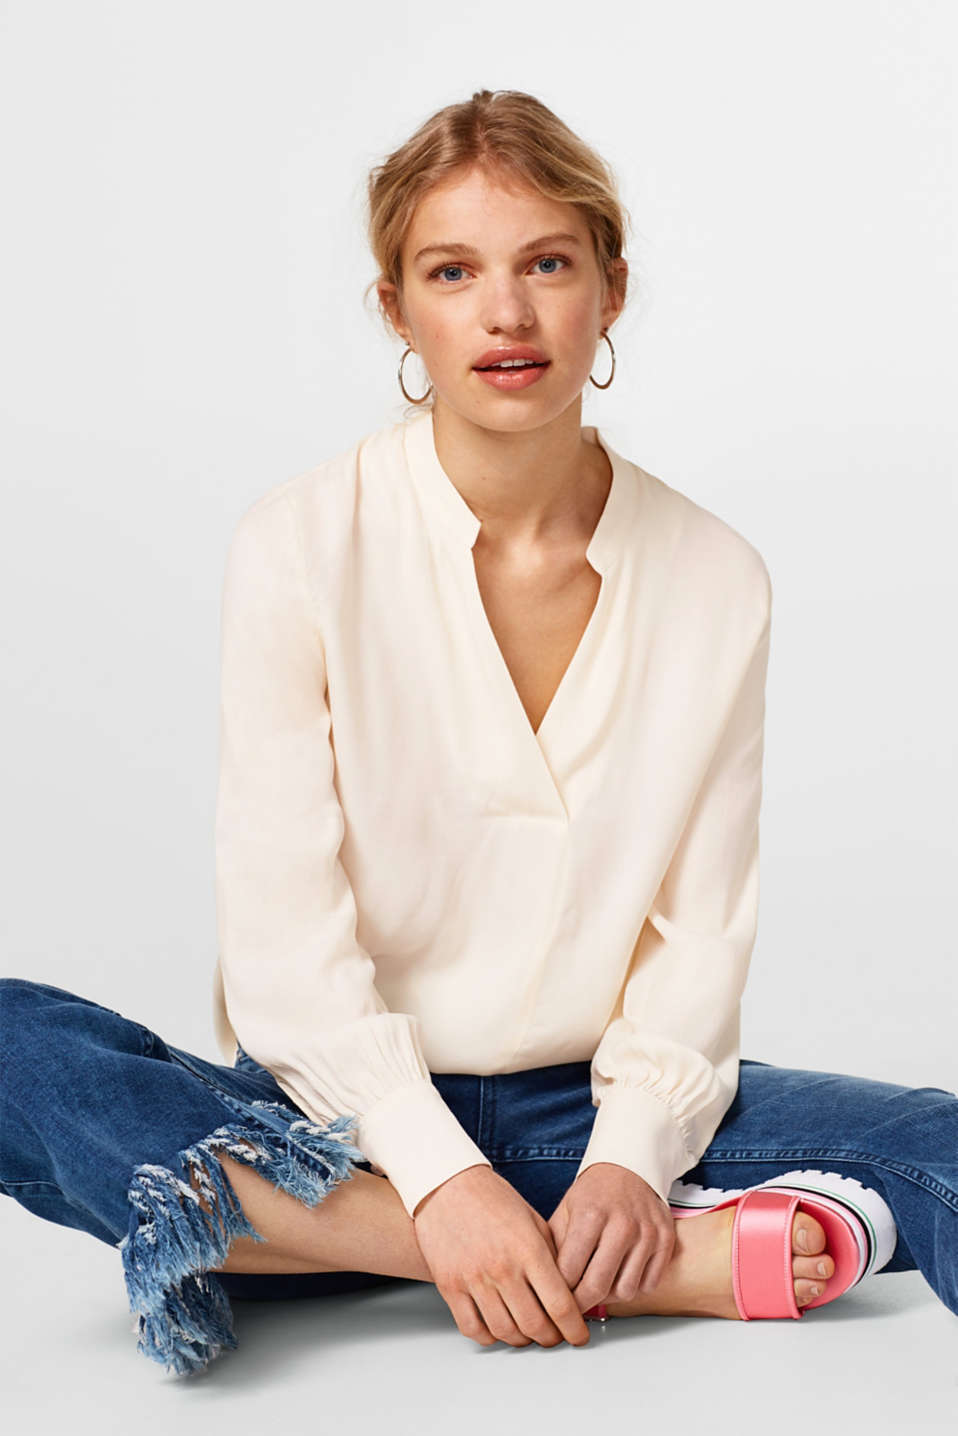 Esprit - Dainty blouse with a fine, striped texture